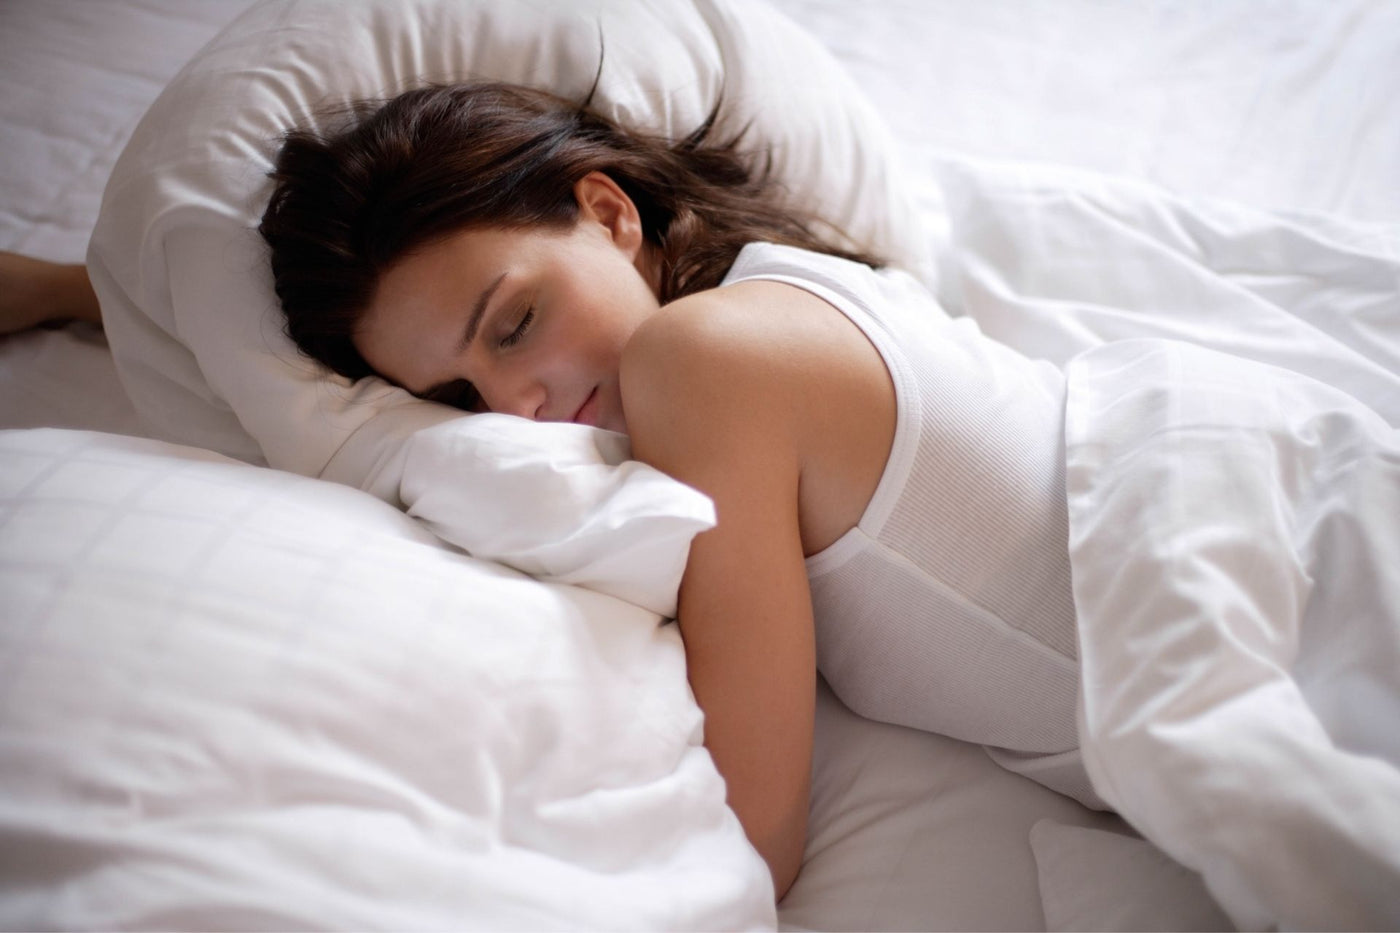 Better Sleep for Those with Fibromyalgia